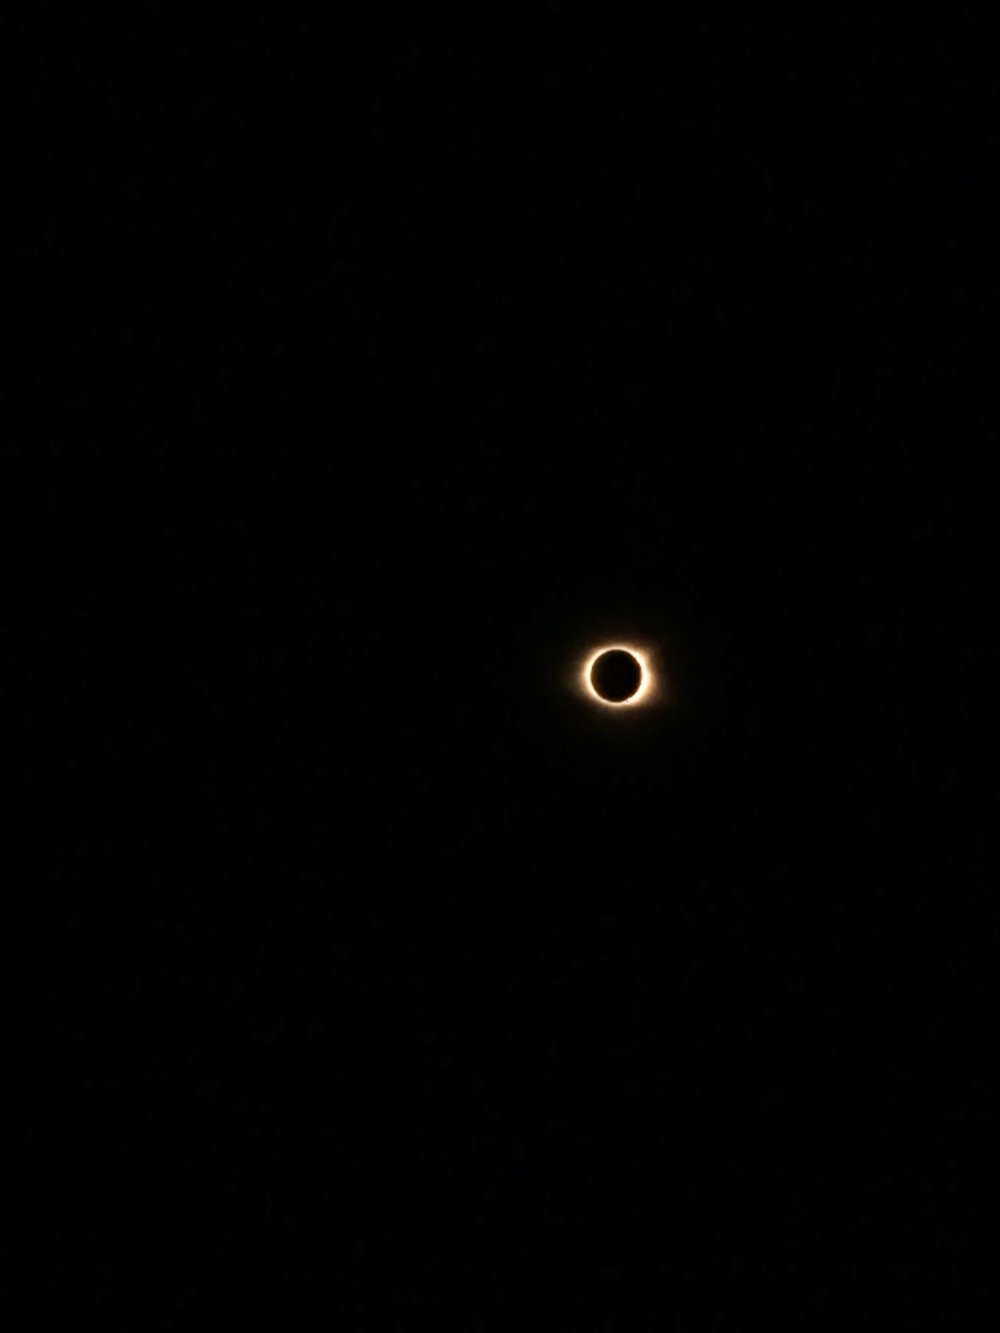 total eclipse from the path of totality